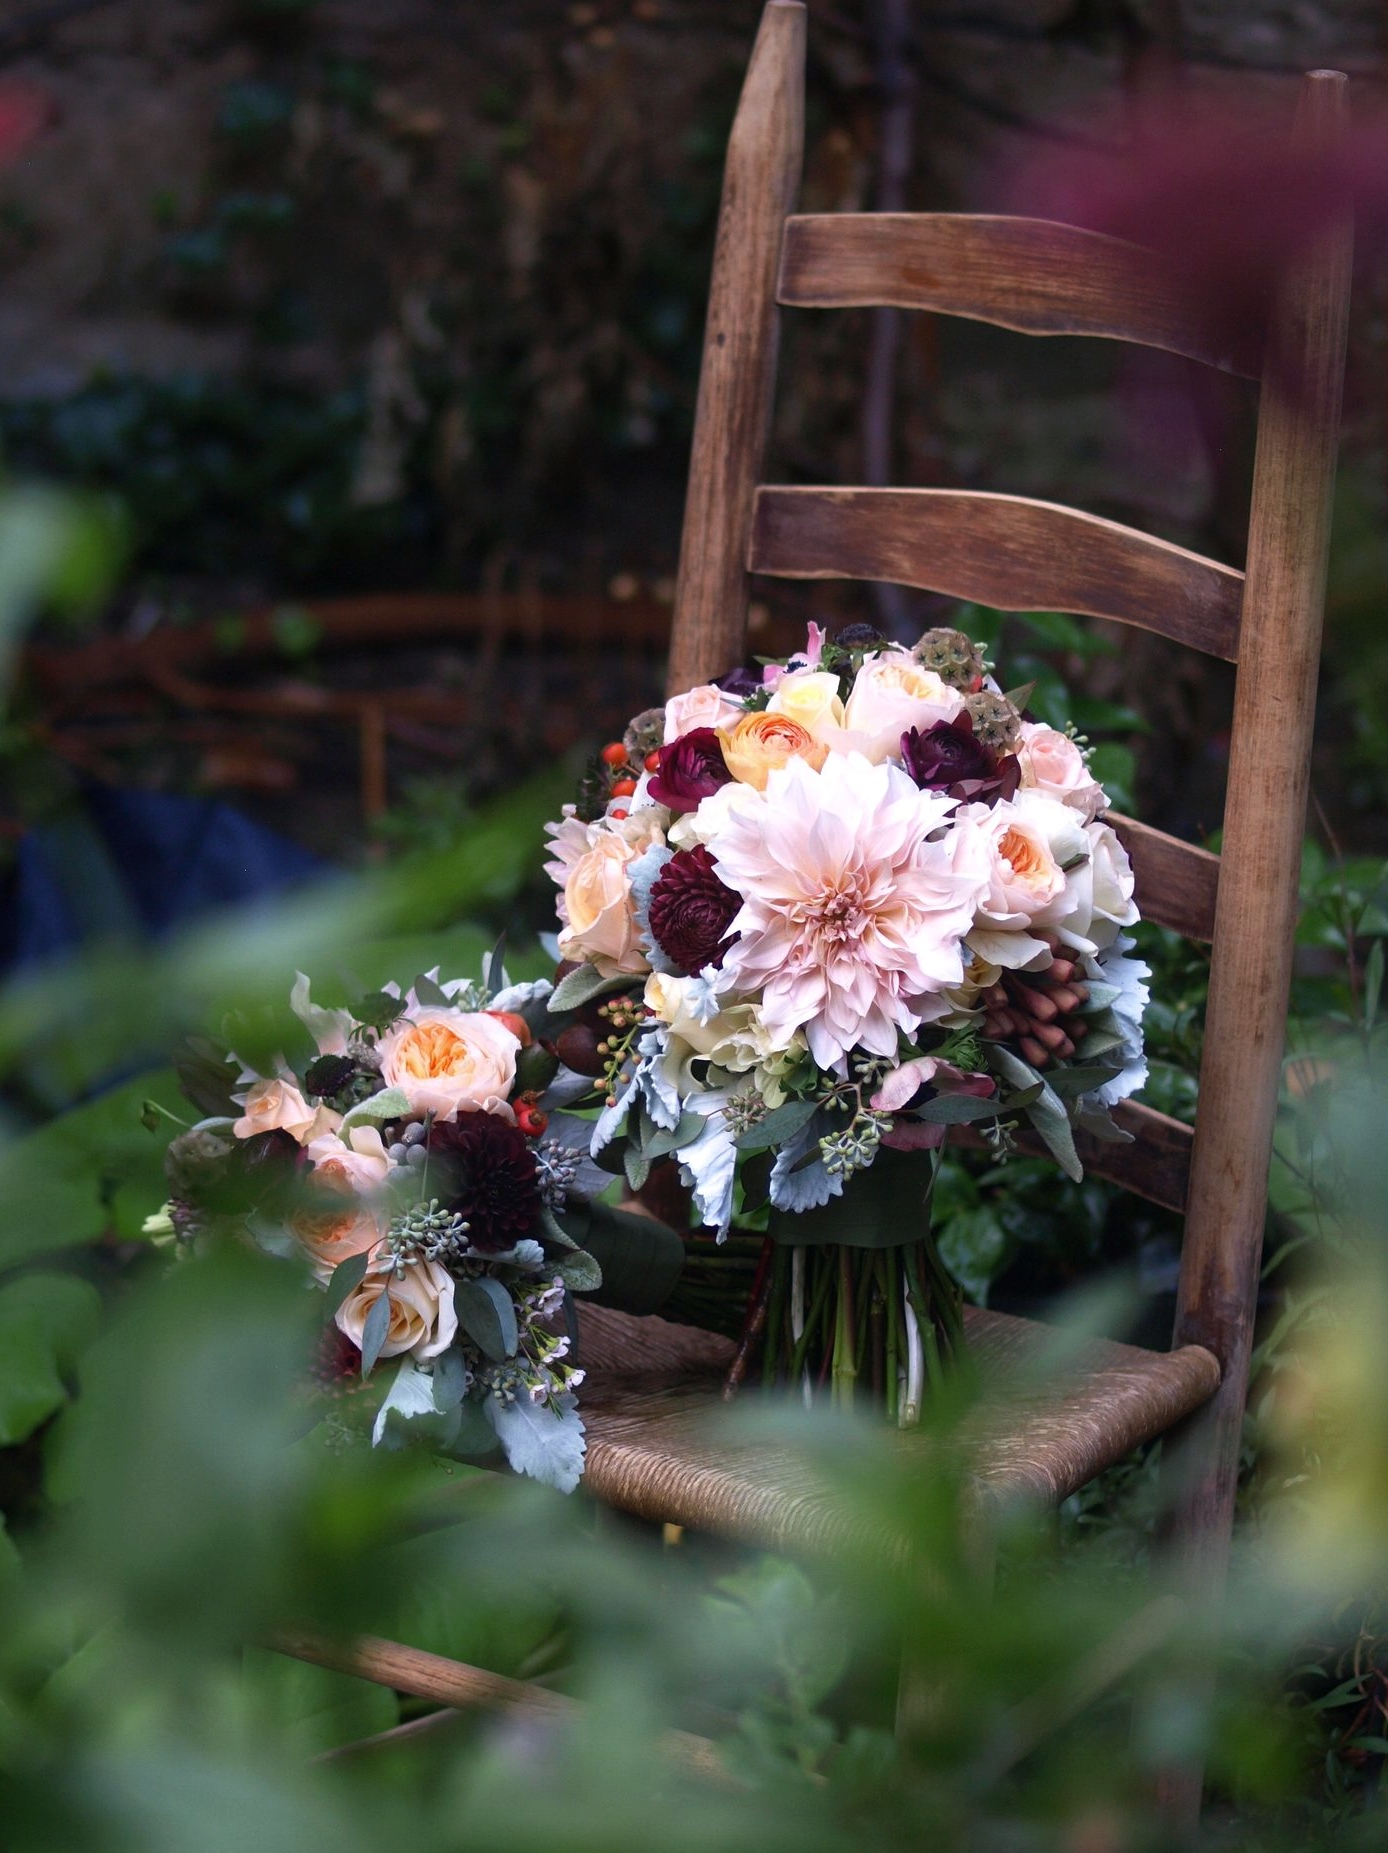 Oreonta house woodstock wedding bouquet 2.jpg